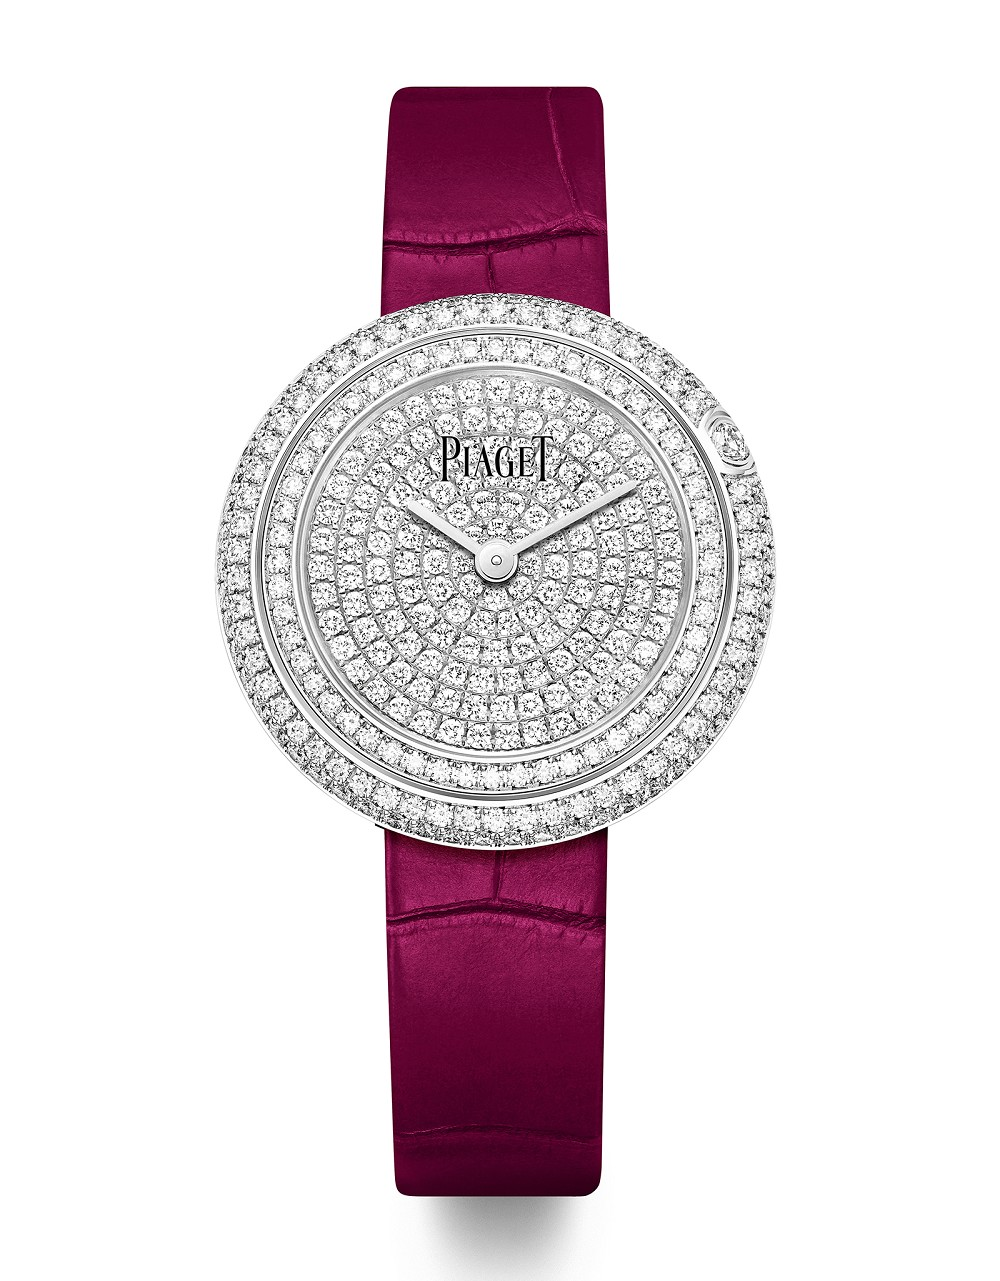 『SIHH 2019』Piaget 推出珠宝腕表新作:Extremely Lady 鳞片饰纹、Limelight Gal